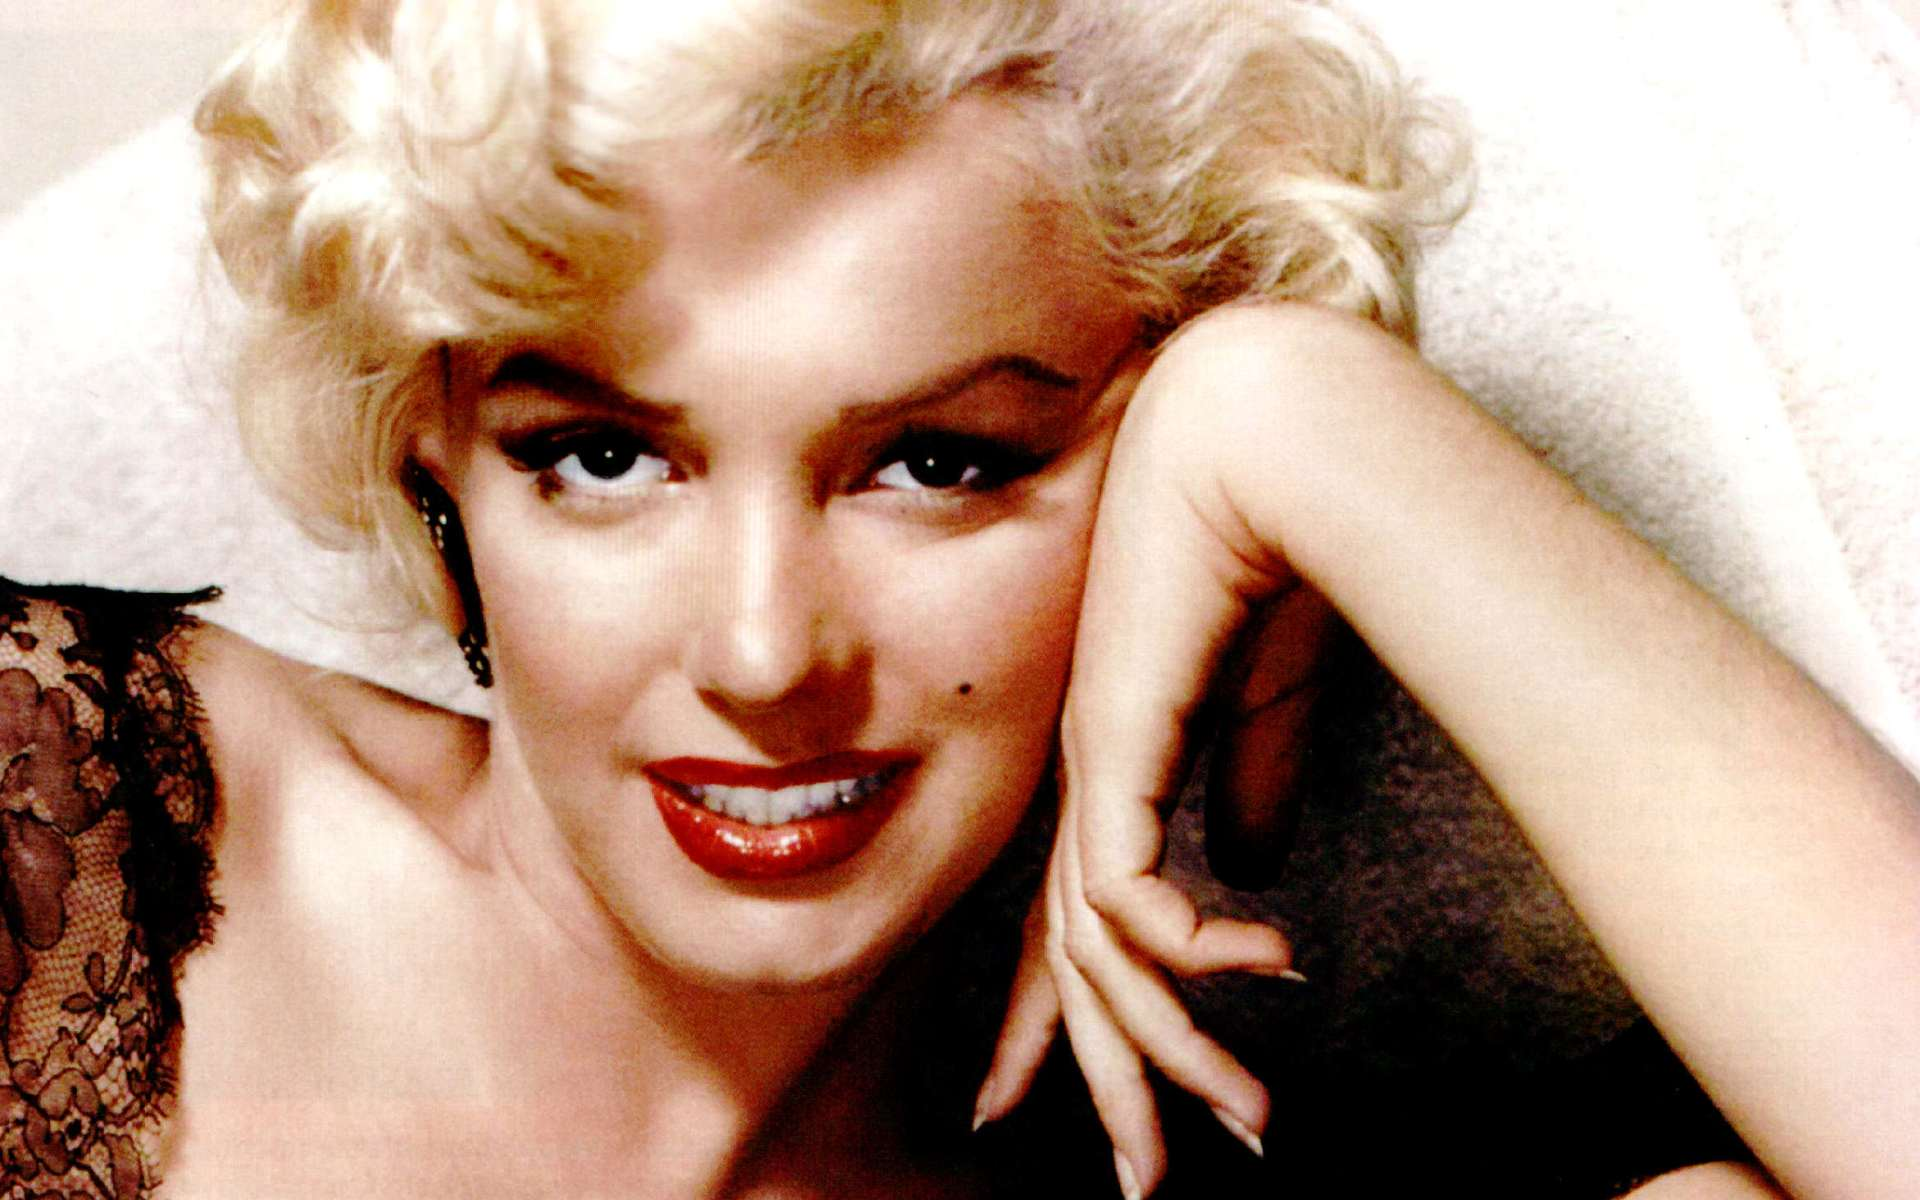 Marilyn-Monroe-Wallpaper-For-Bedroom-Walls-1